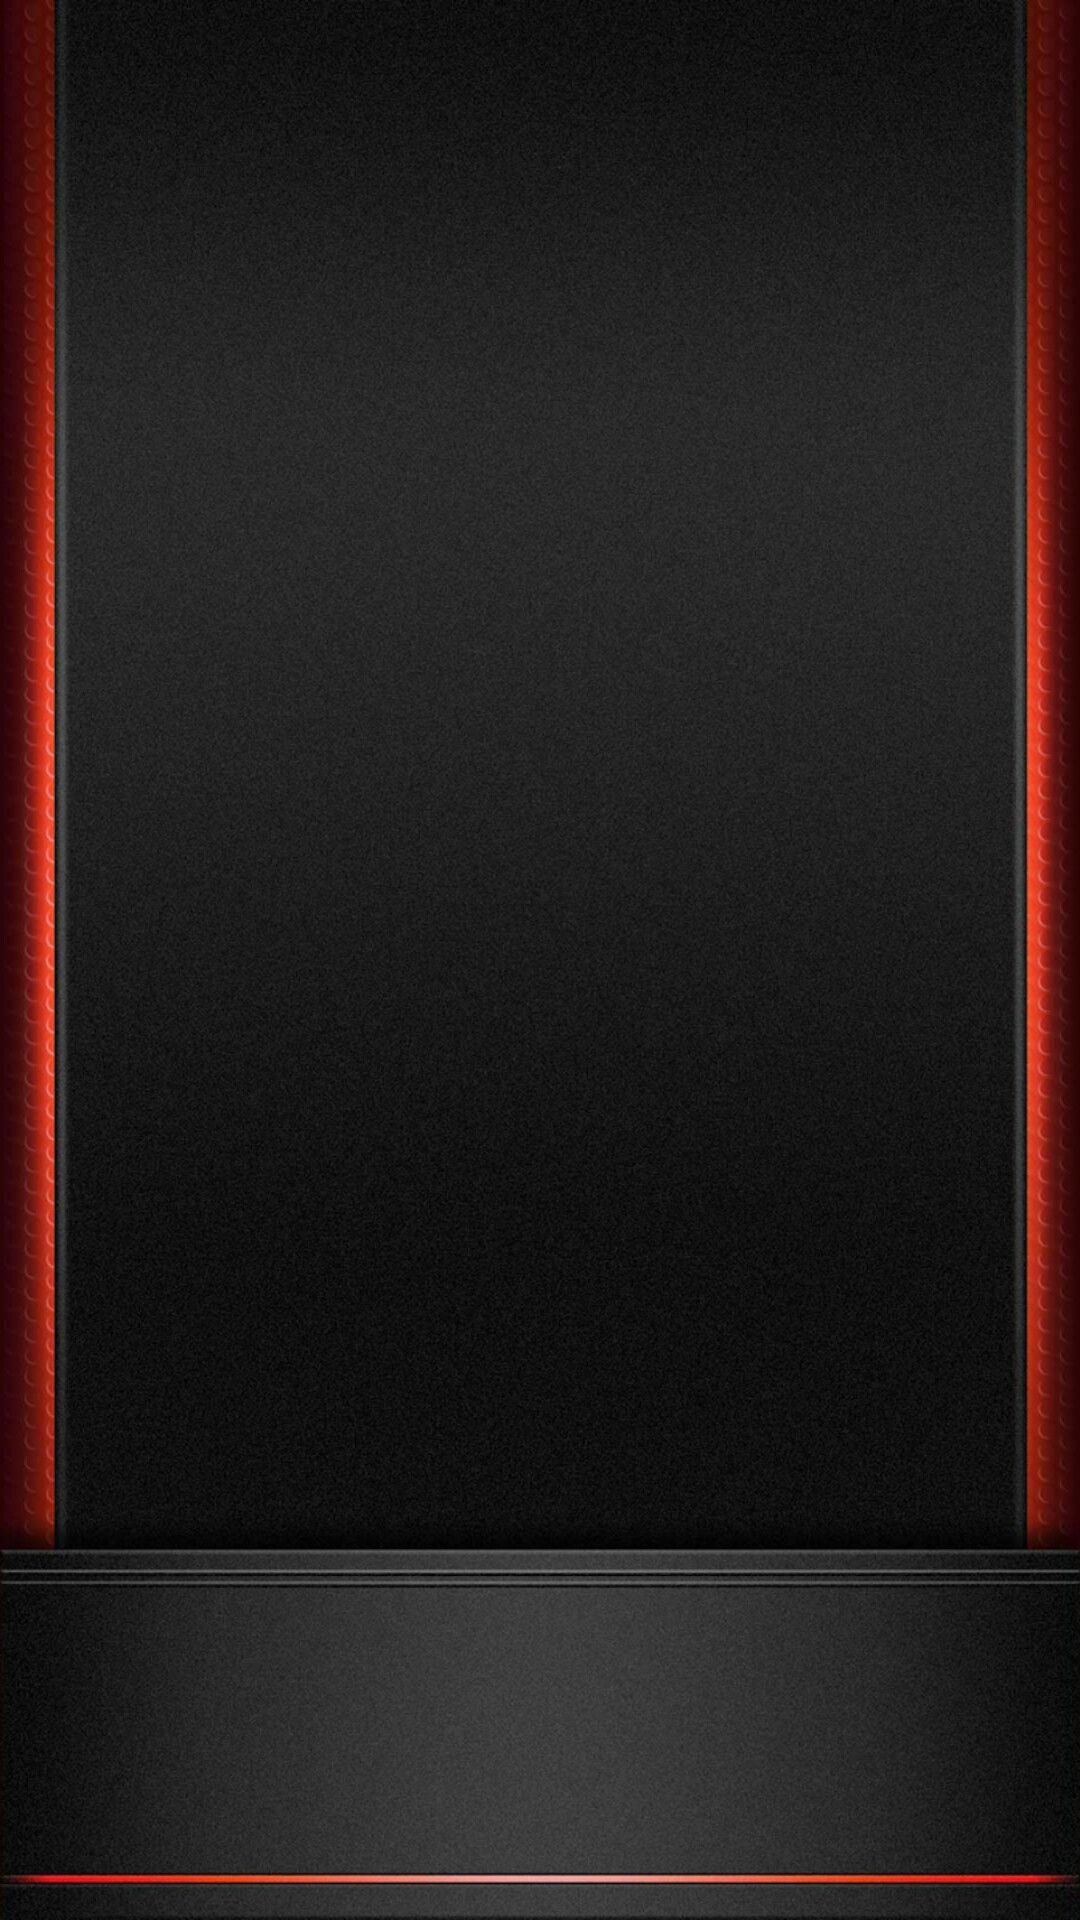 Wallpaper iphone black red - Black With Red Trim Wallpaper